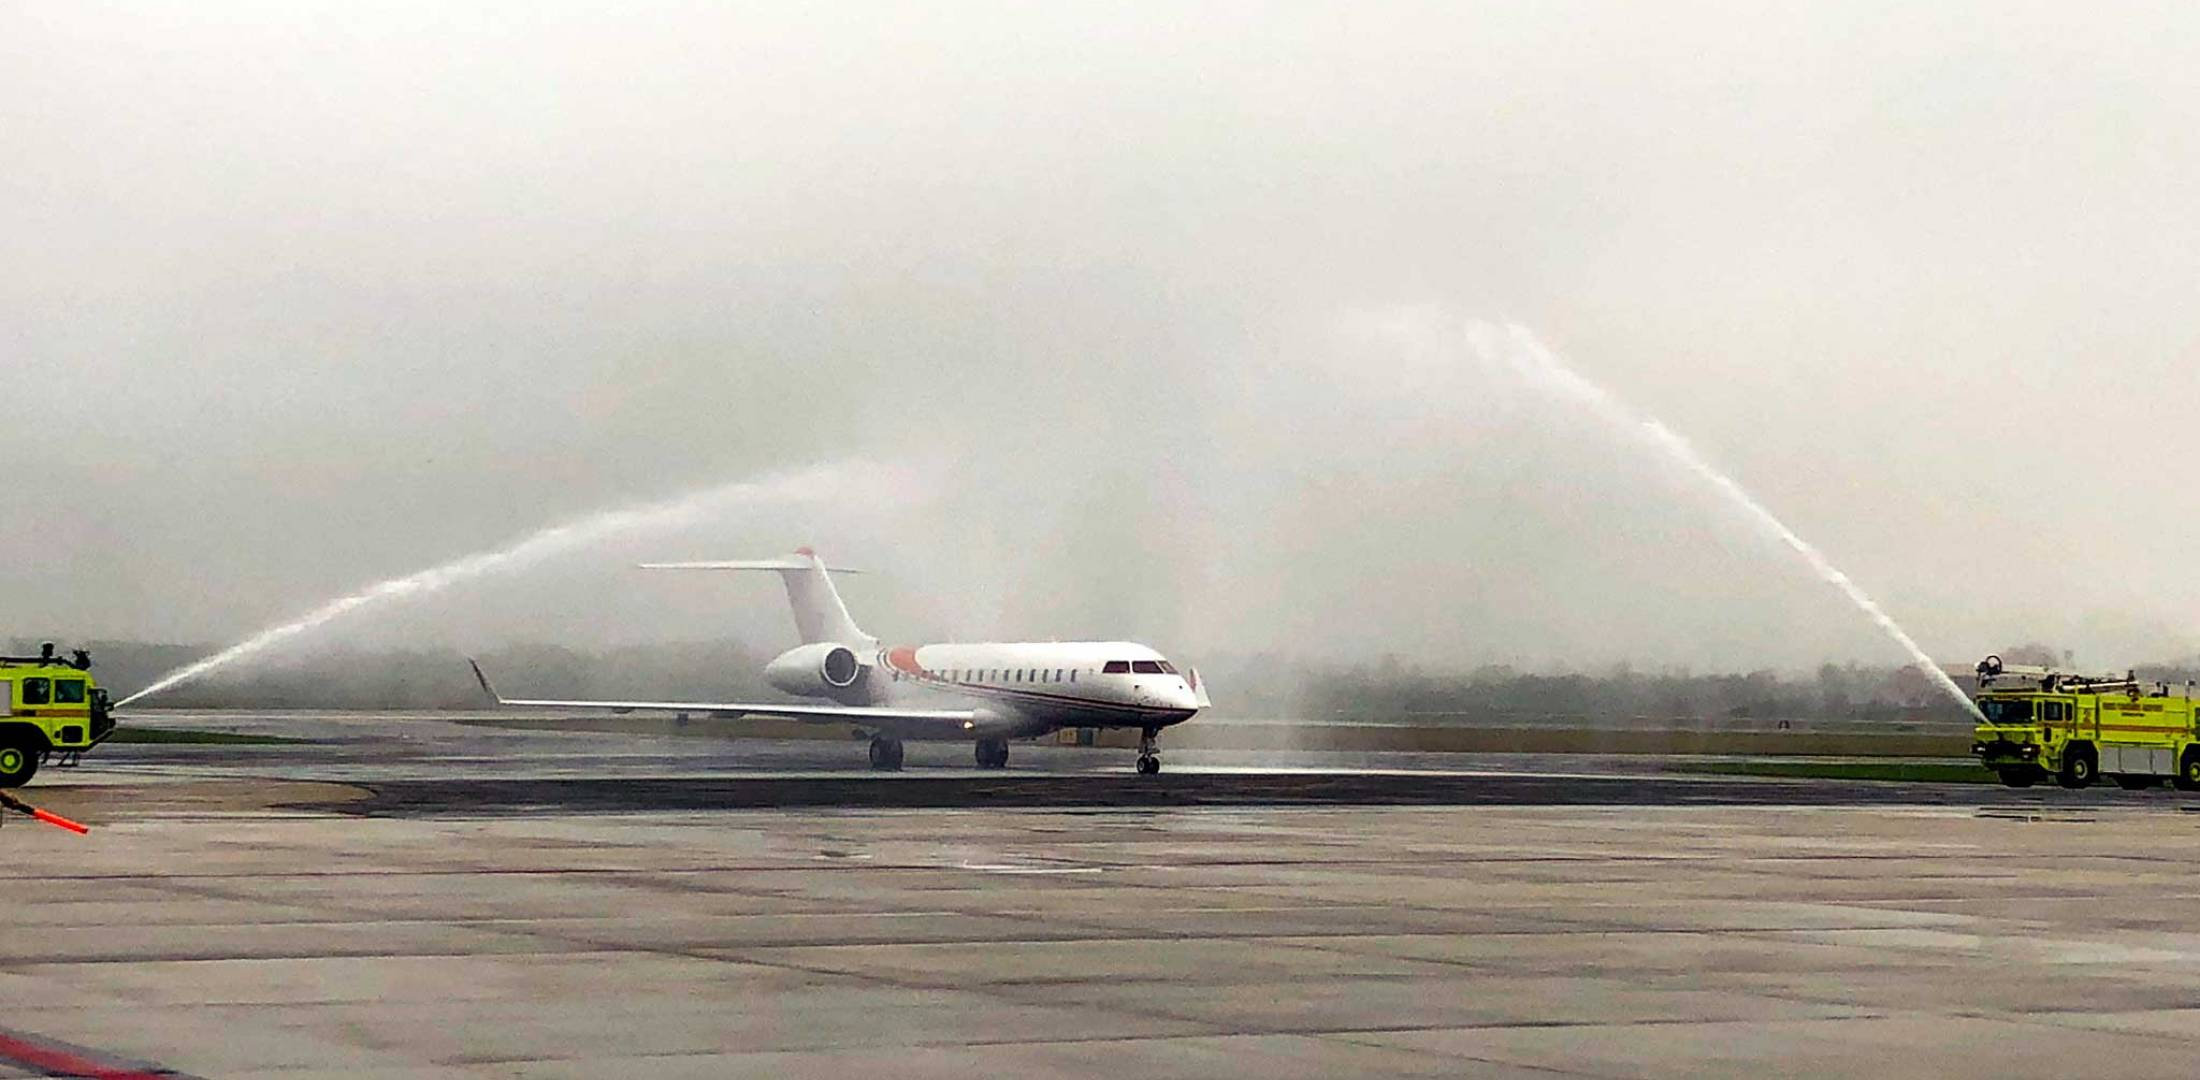 FIrst international aircraft arrival at GYY